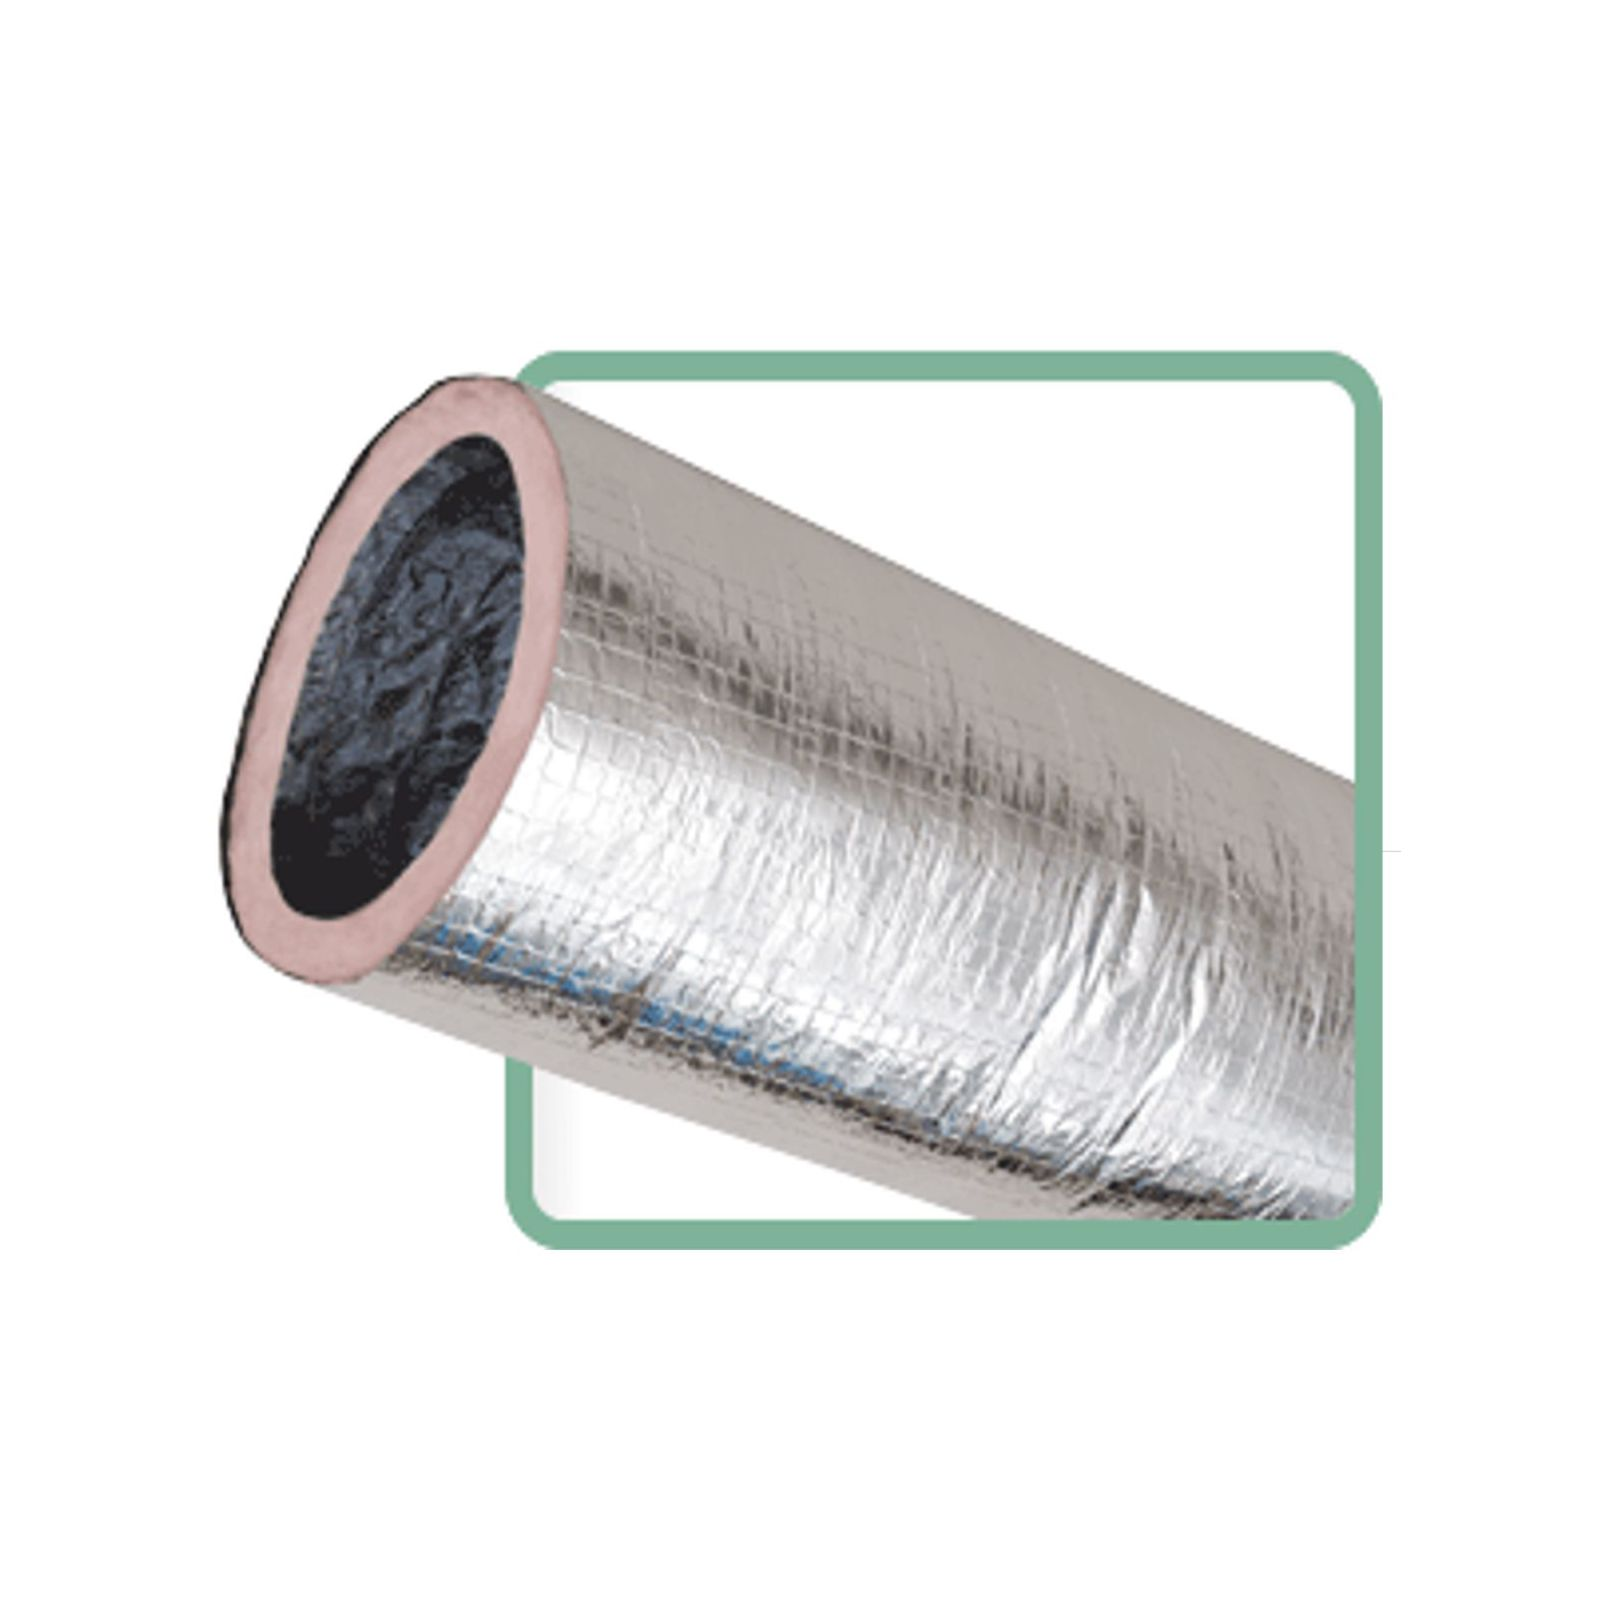 "Thermaflex 056314000107 - KM Silver Flex-Vent Insulated Flexible Duct Assembly, 14"" X 7', R8"